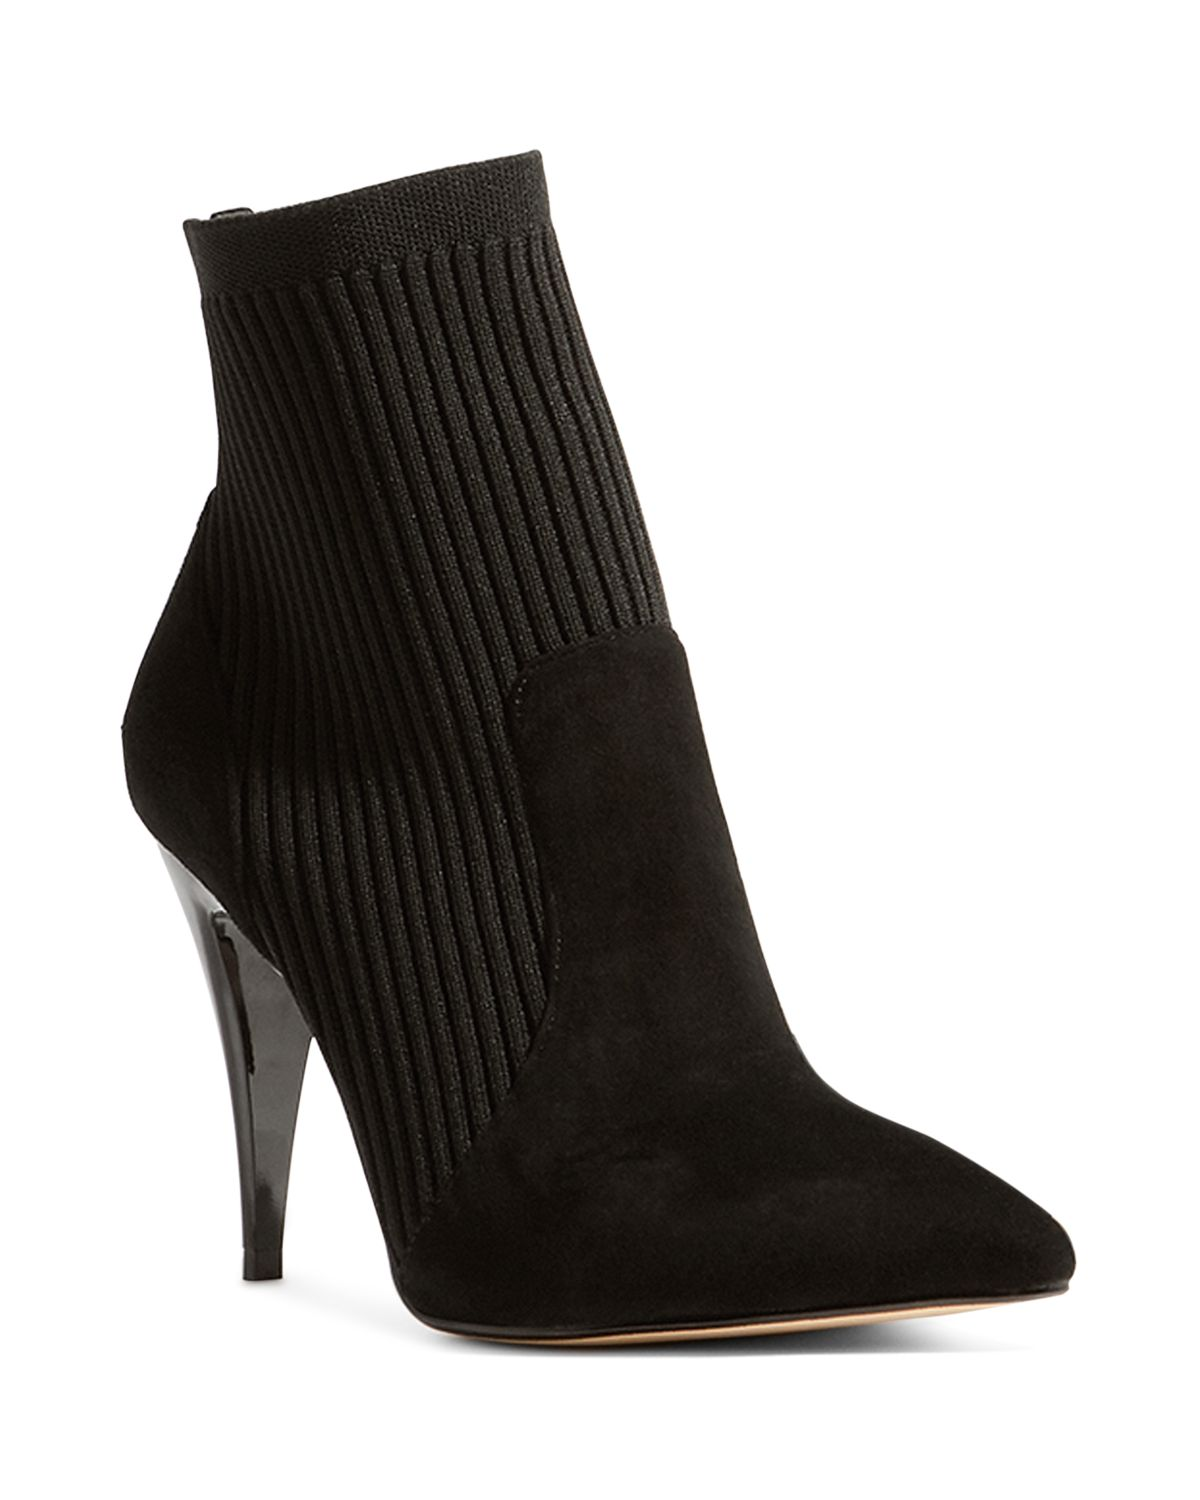 Karen Millen Women's Knit Pointed Toe Stretch Sock Booties